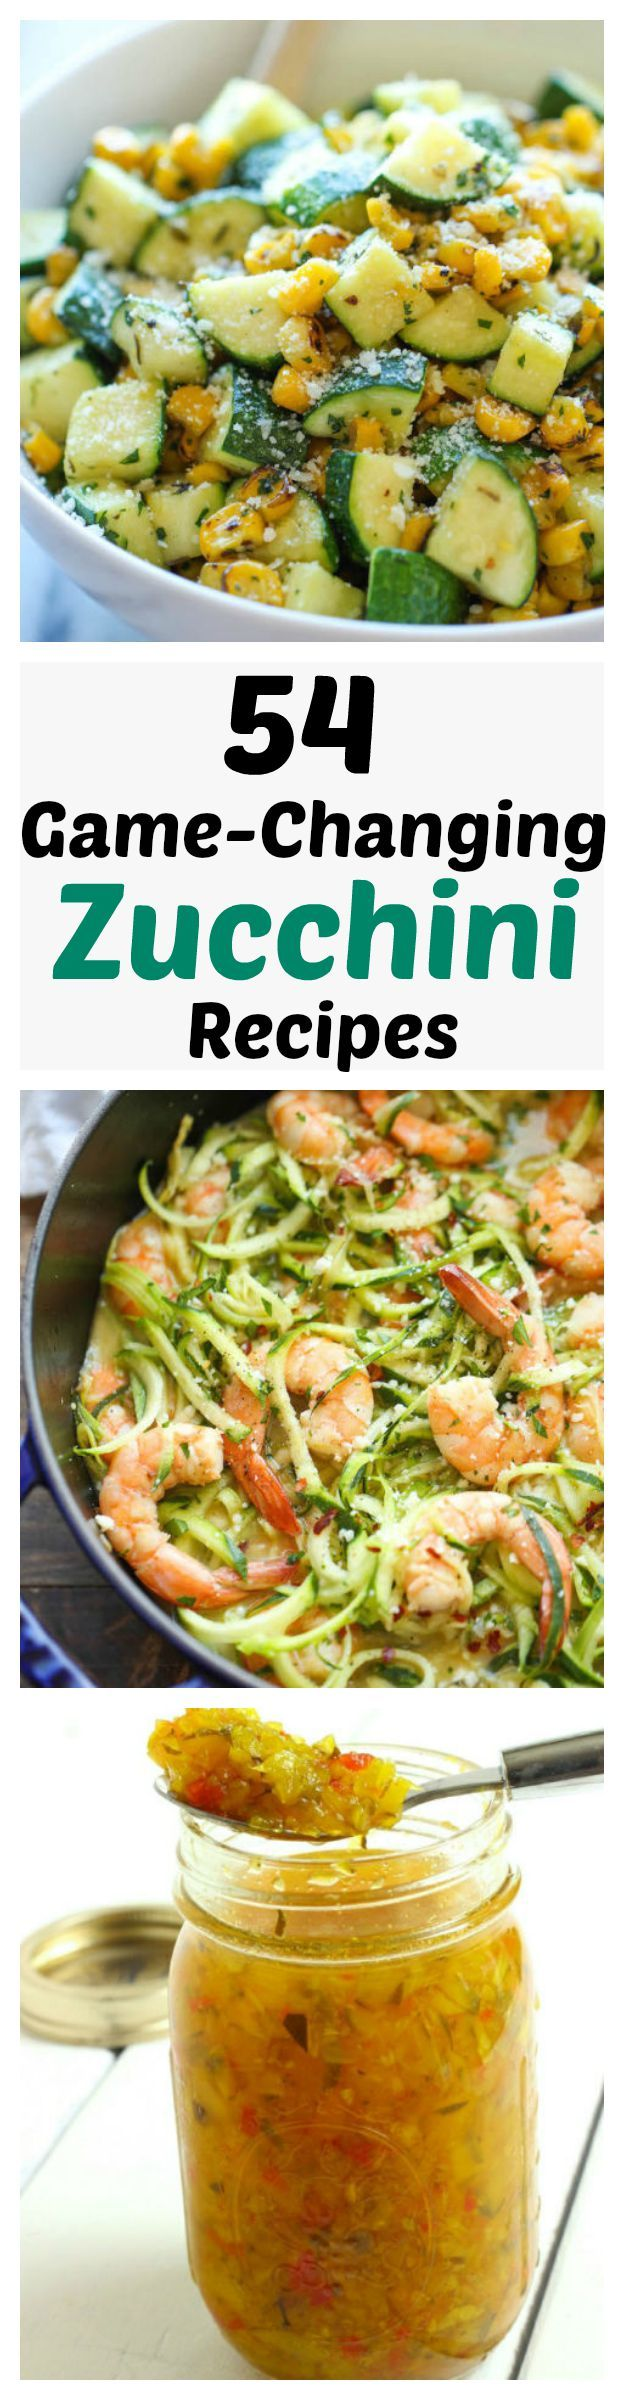 Eat your favorite summer vegetable all year long with these delicious recipes using zucchini.